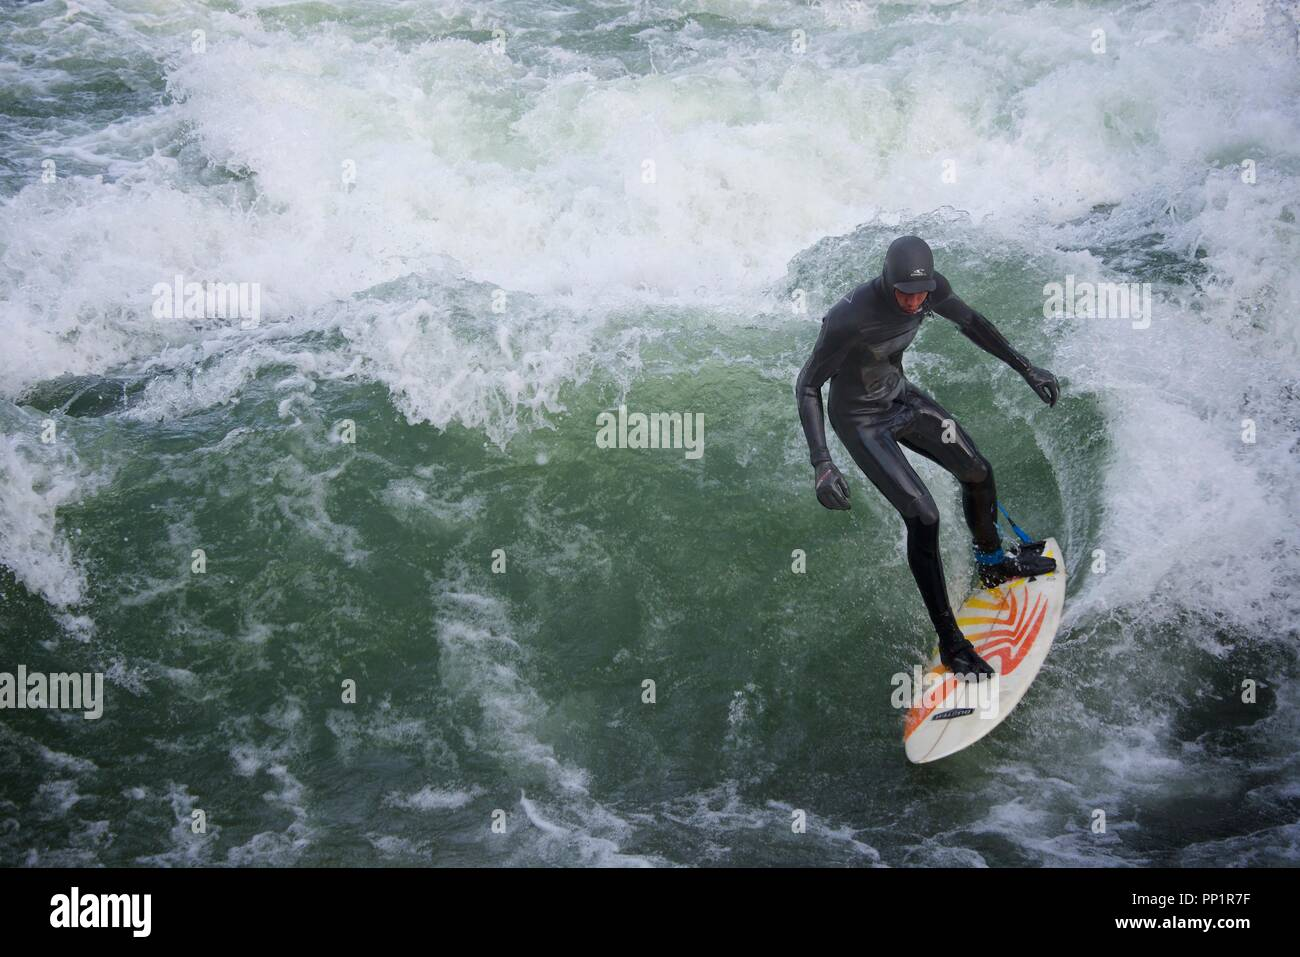 A surfer rides the continuous wave in the Eisbach river in the Englischer Garten city park. - Stock Image